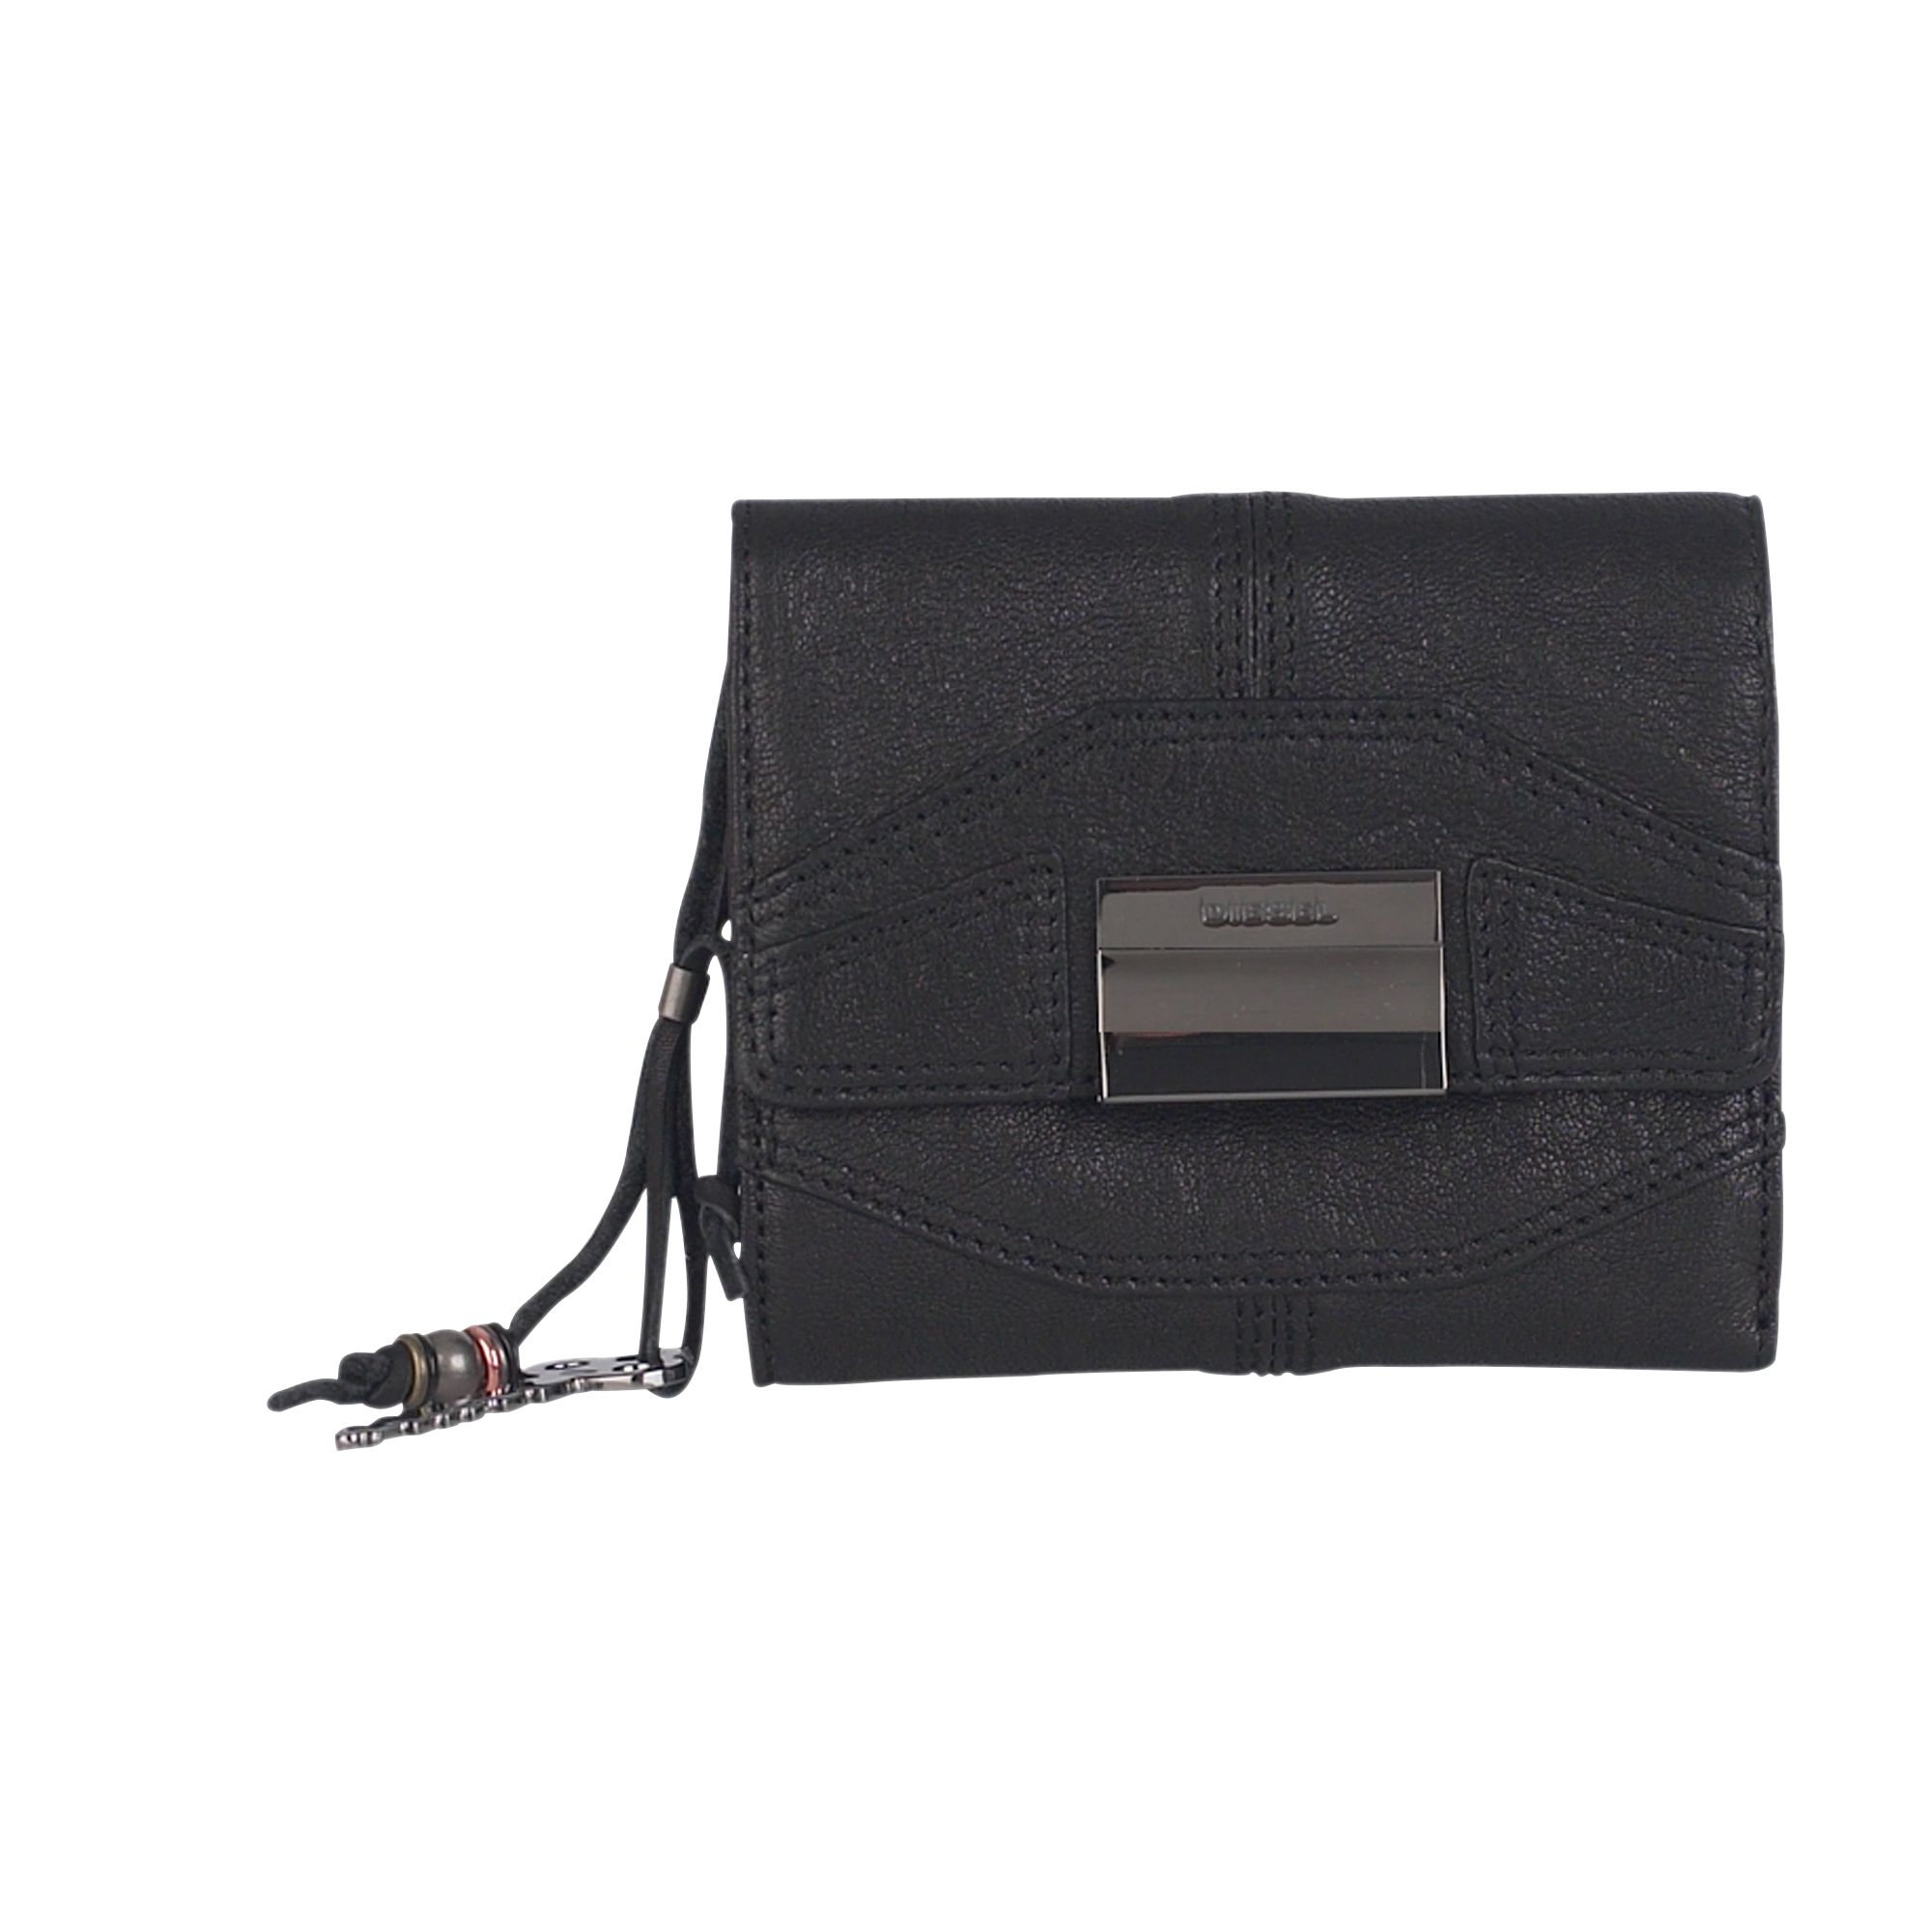 Diesel Eliodoro small leather flap over wallet product image